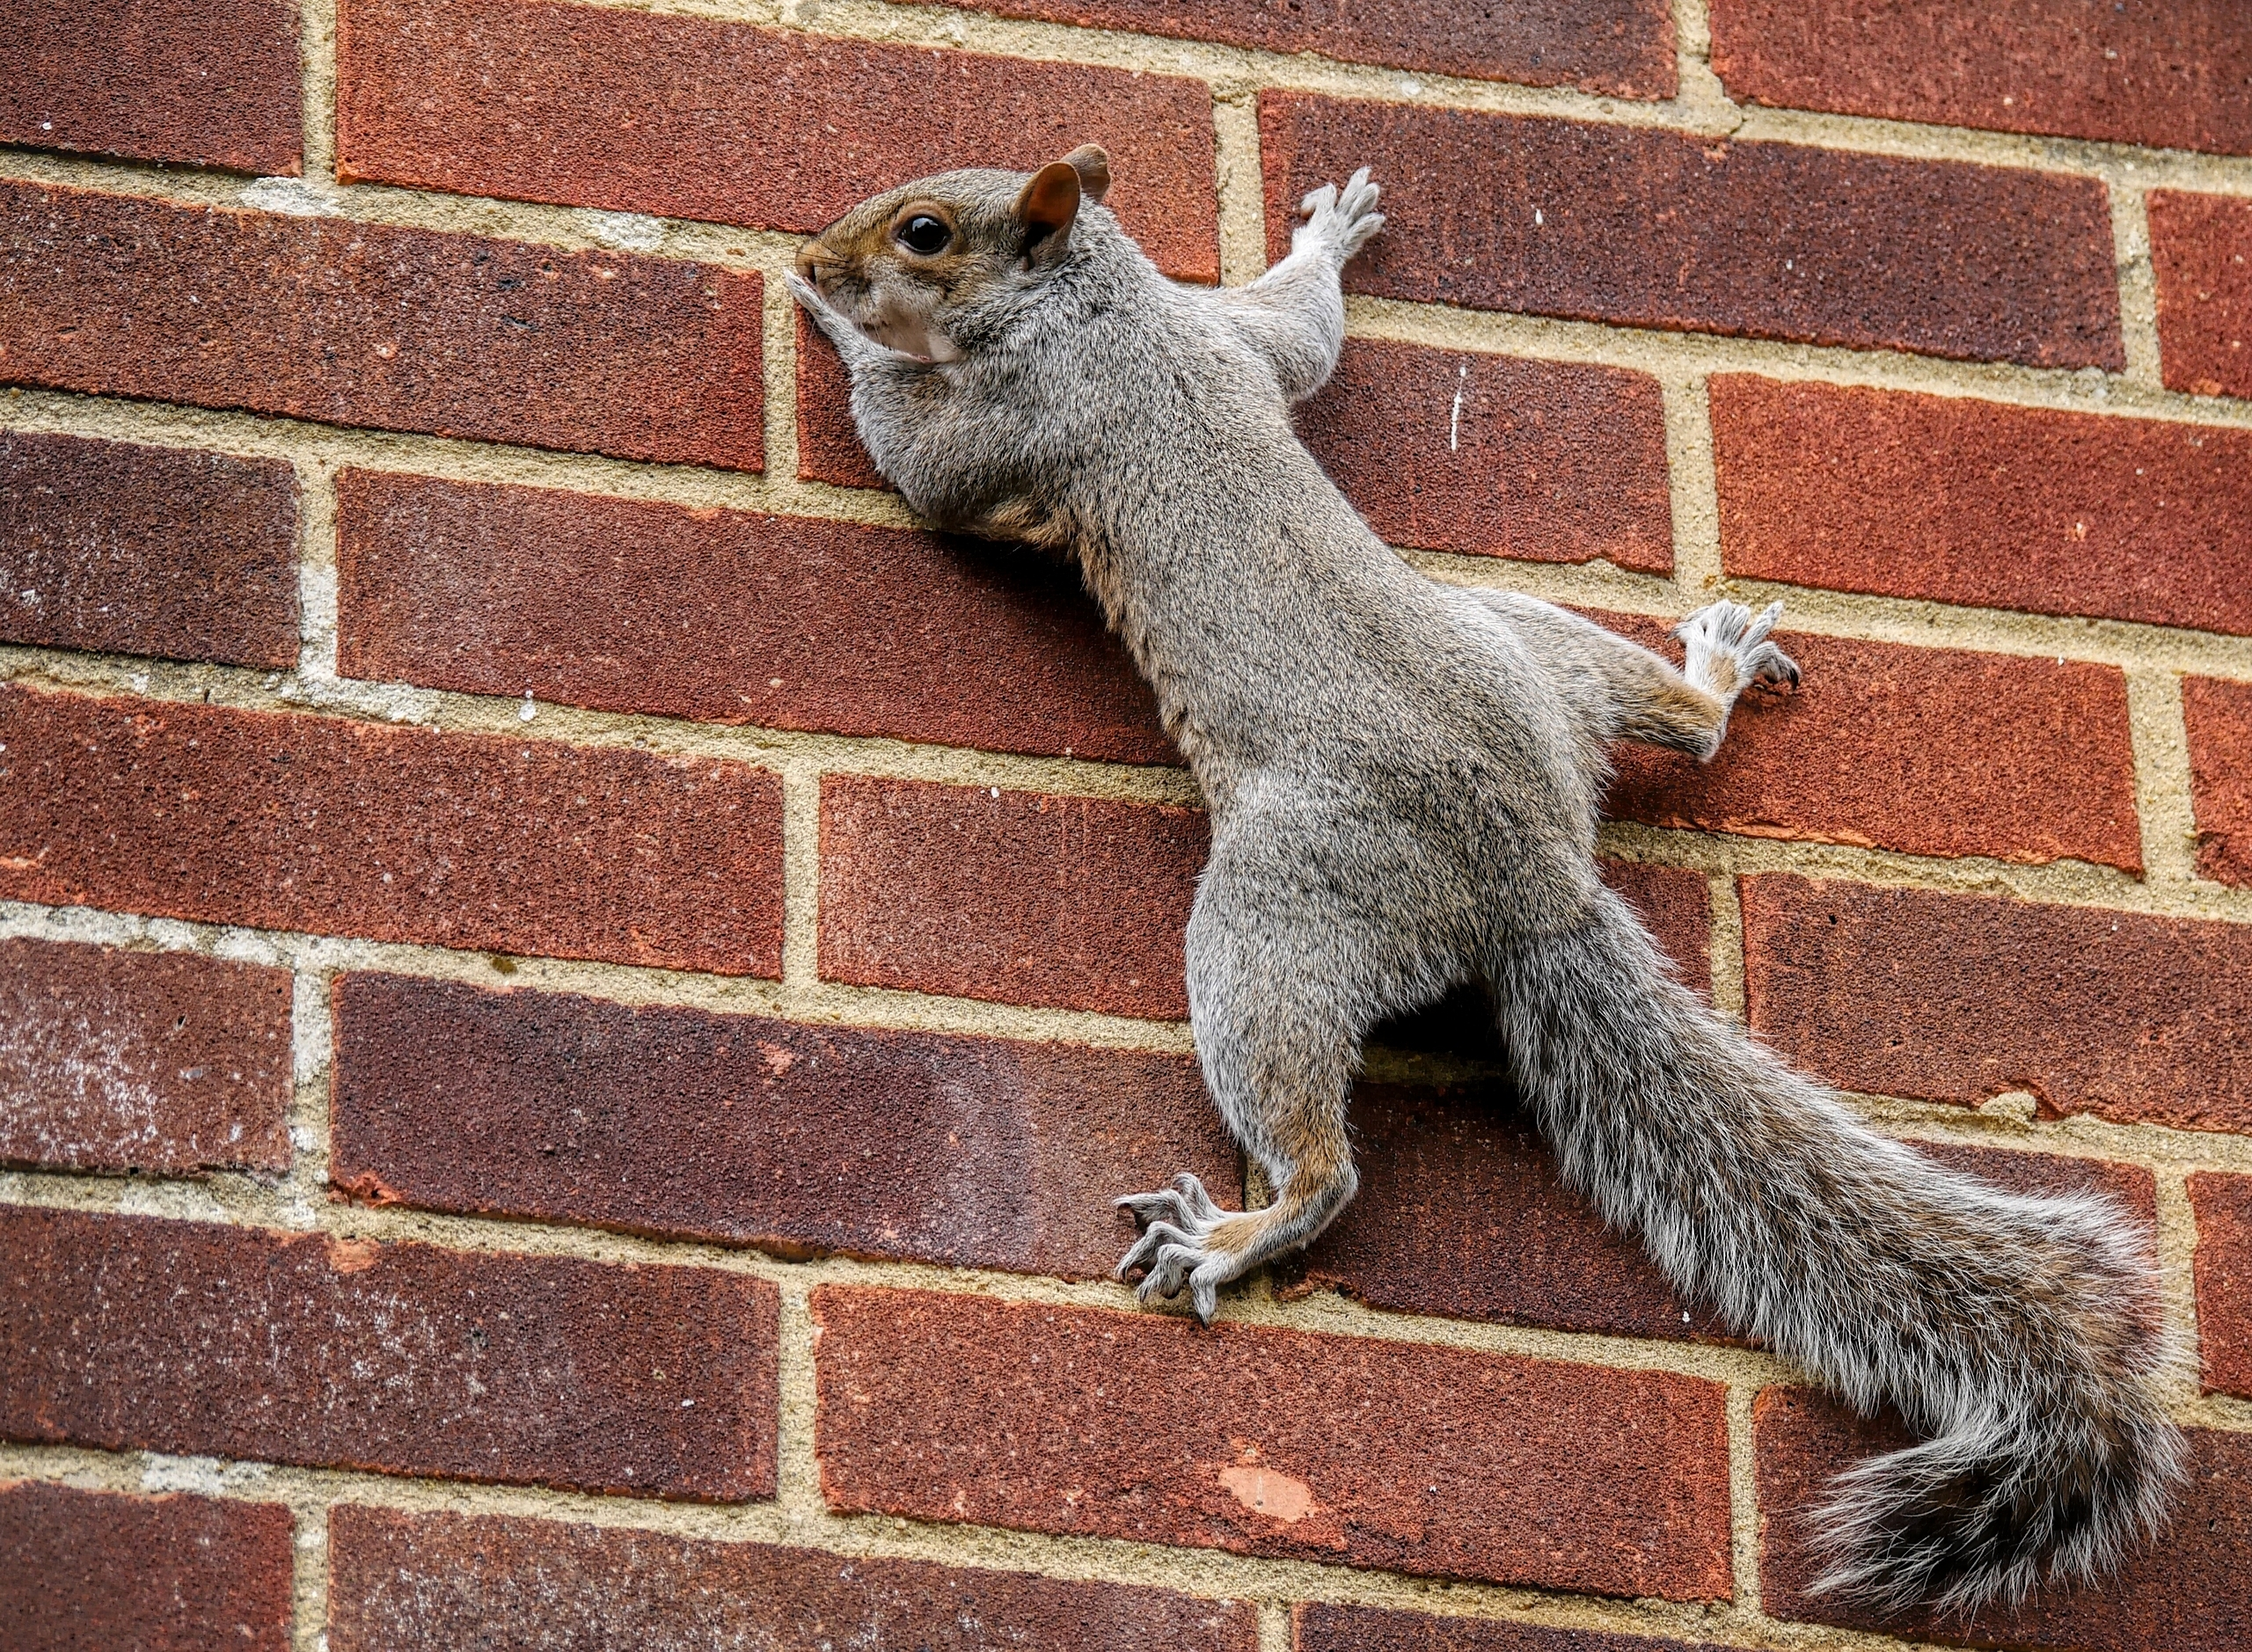 131818 download wallpaper Animals, Squirrel, Wall, Tail, Climb screensavers and pictures for free